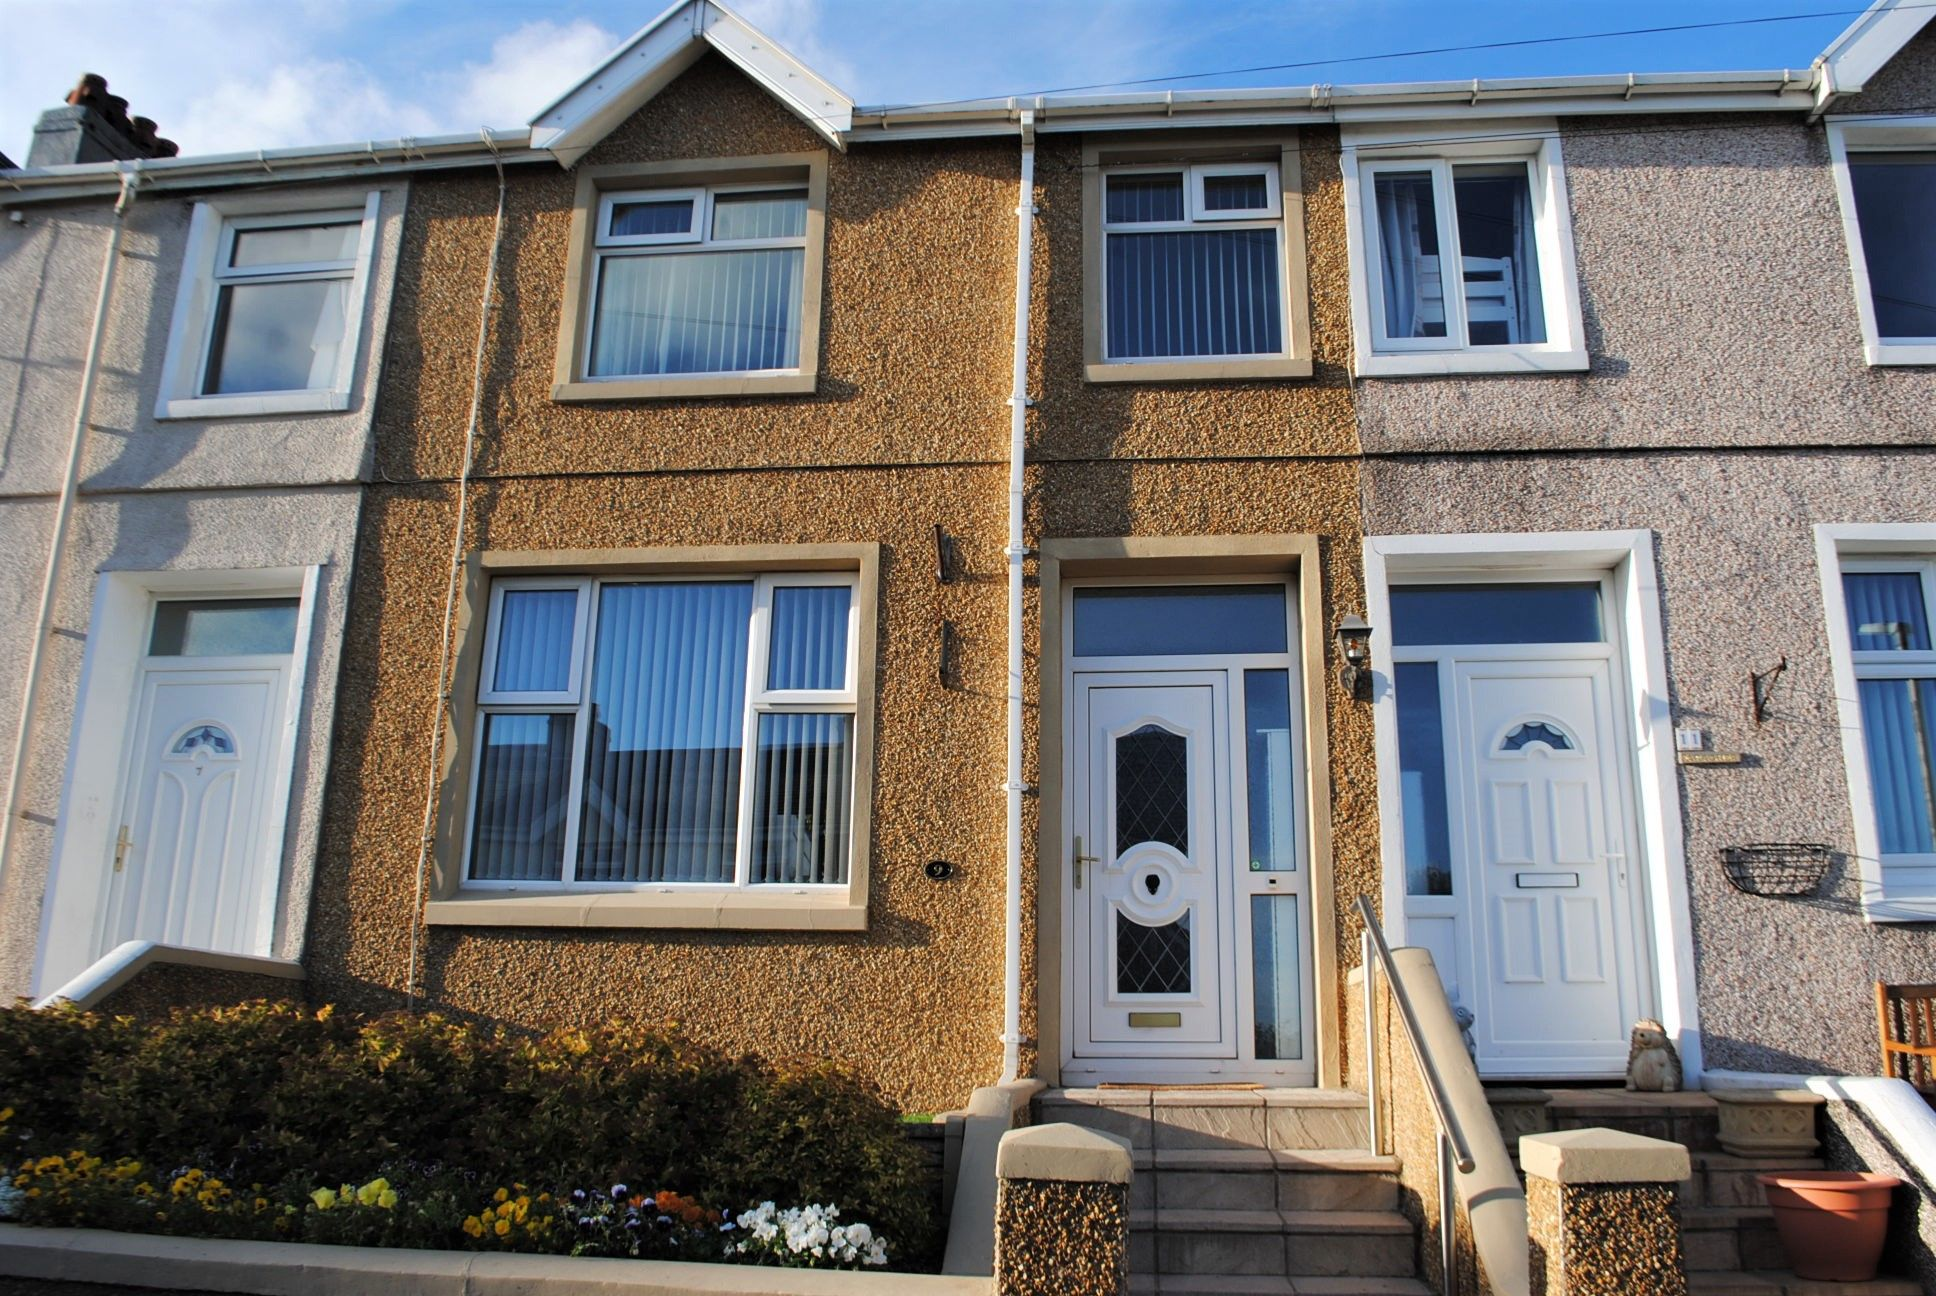 3 bedroom mid terraced house Let in Onchan - Photograph 1